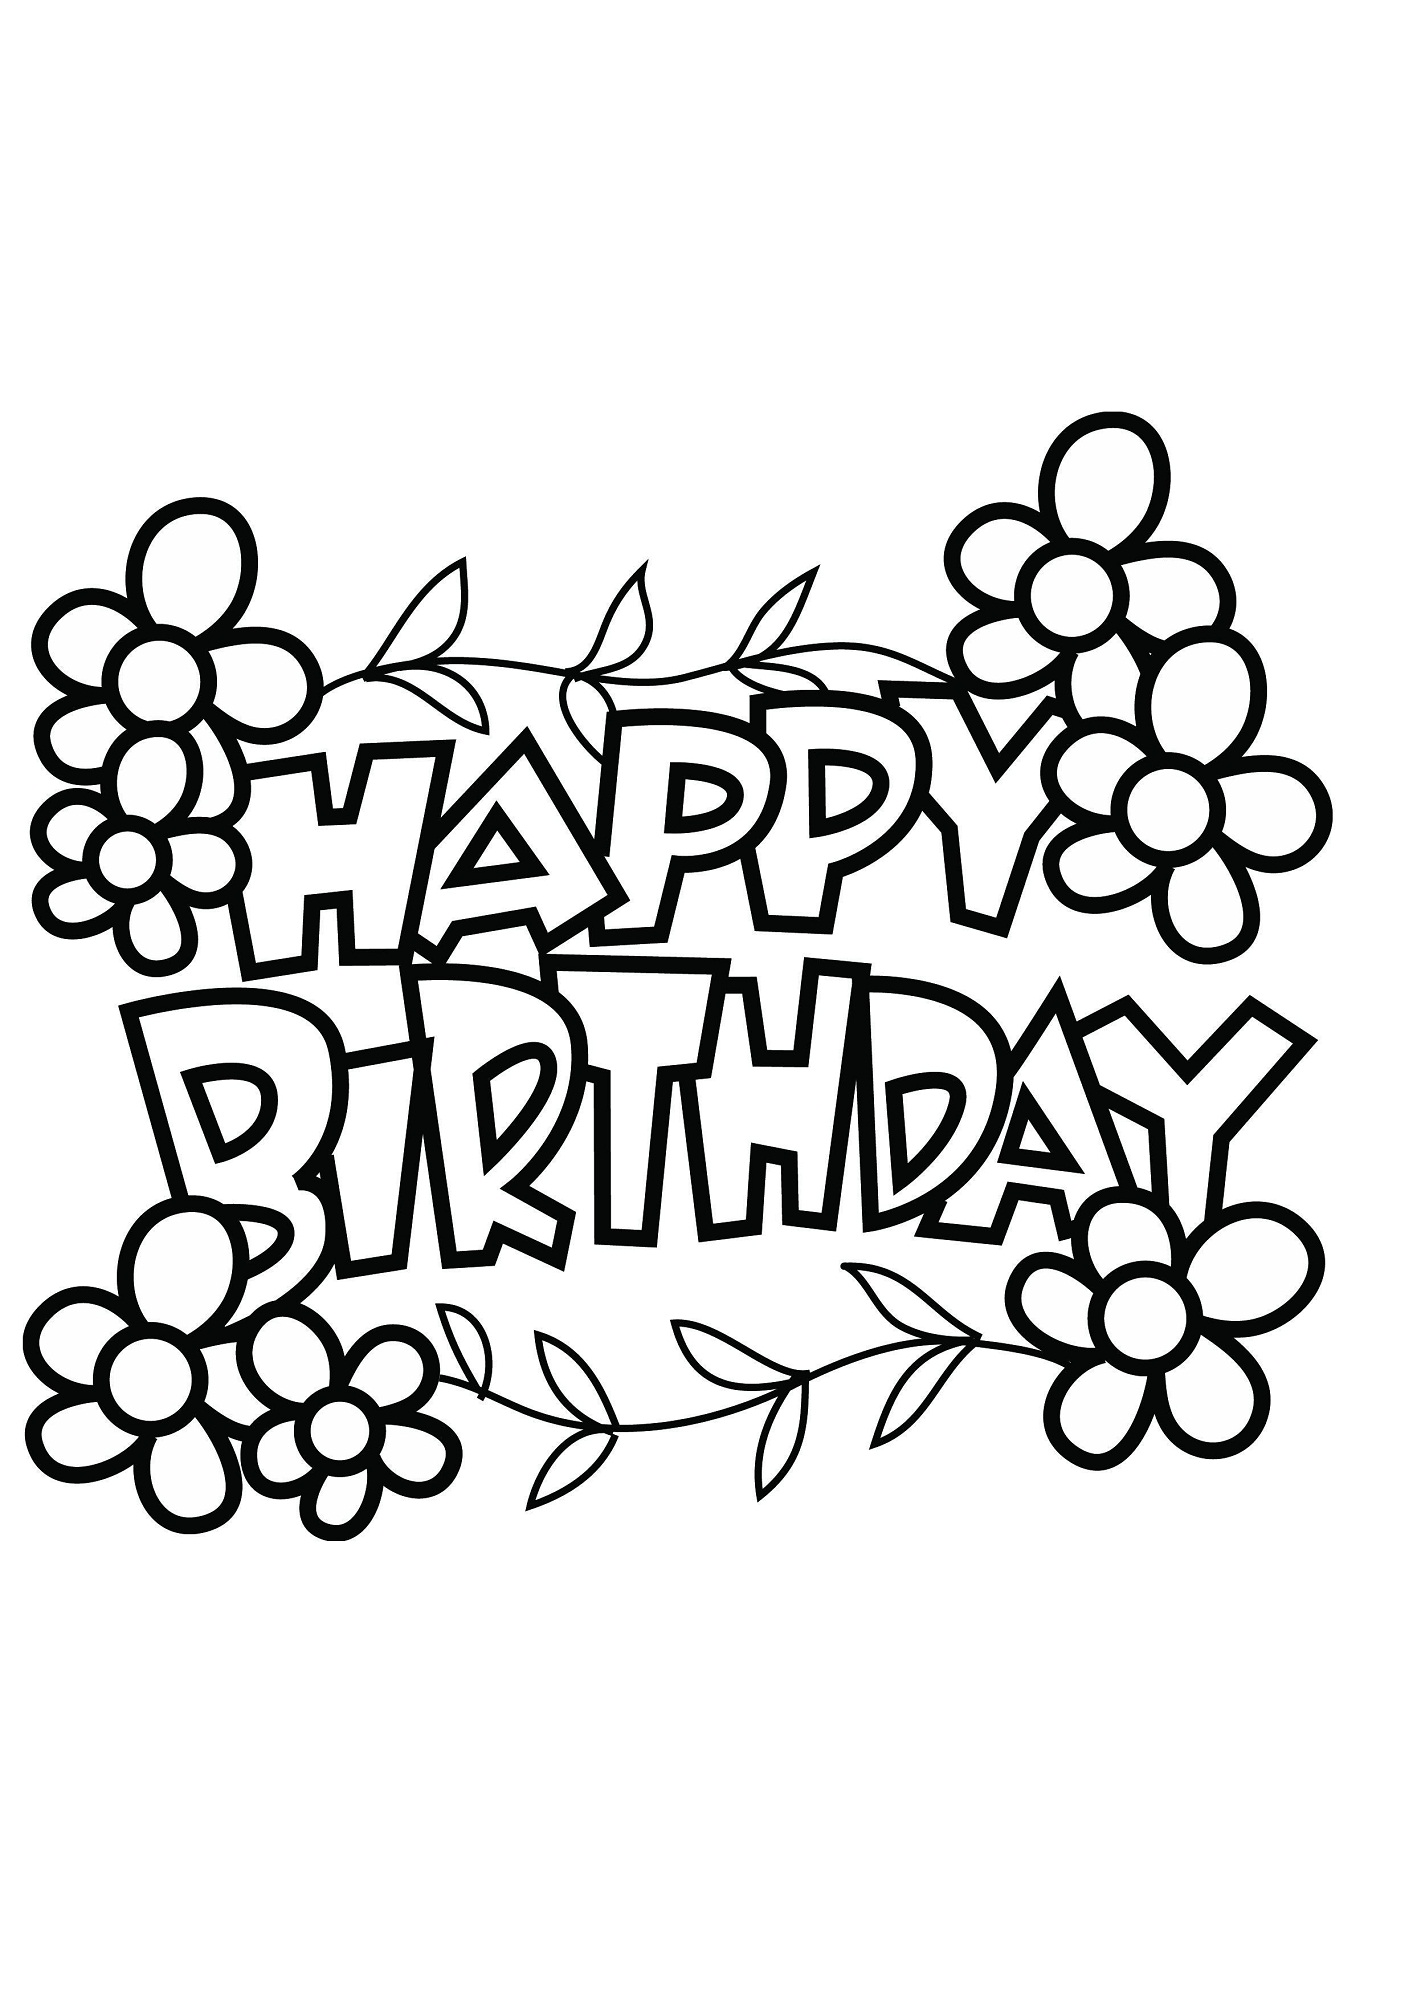 Birthday cake maths facts colouring page - Happy Birthday Color Pages Flower